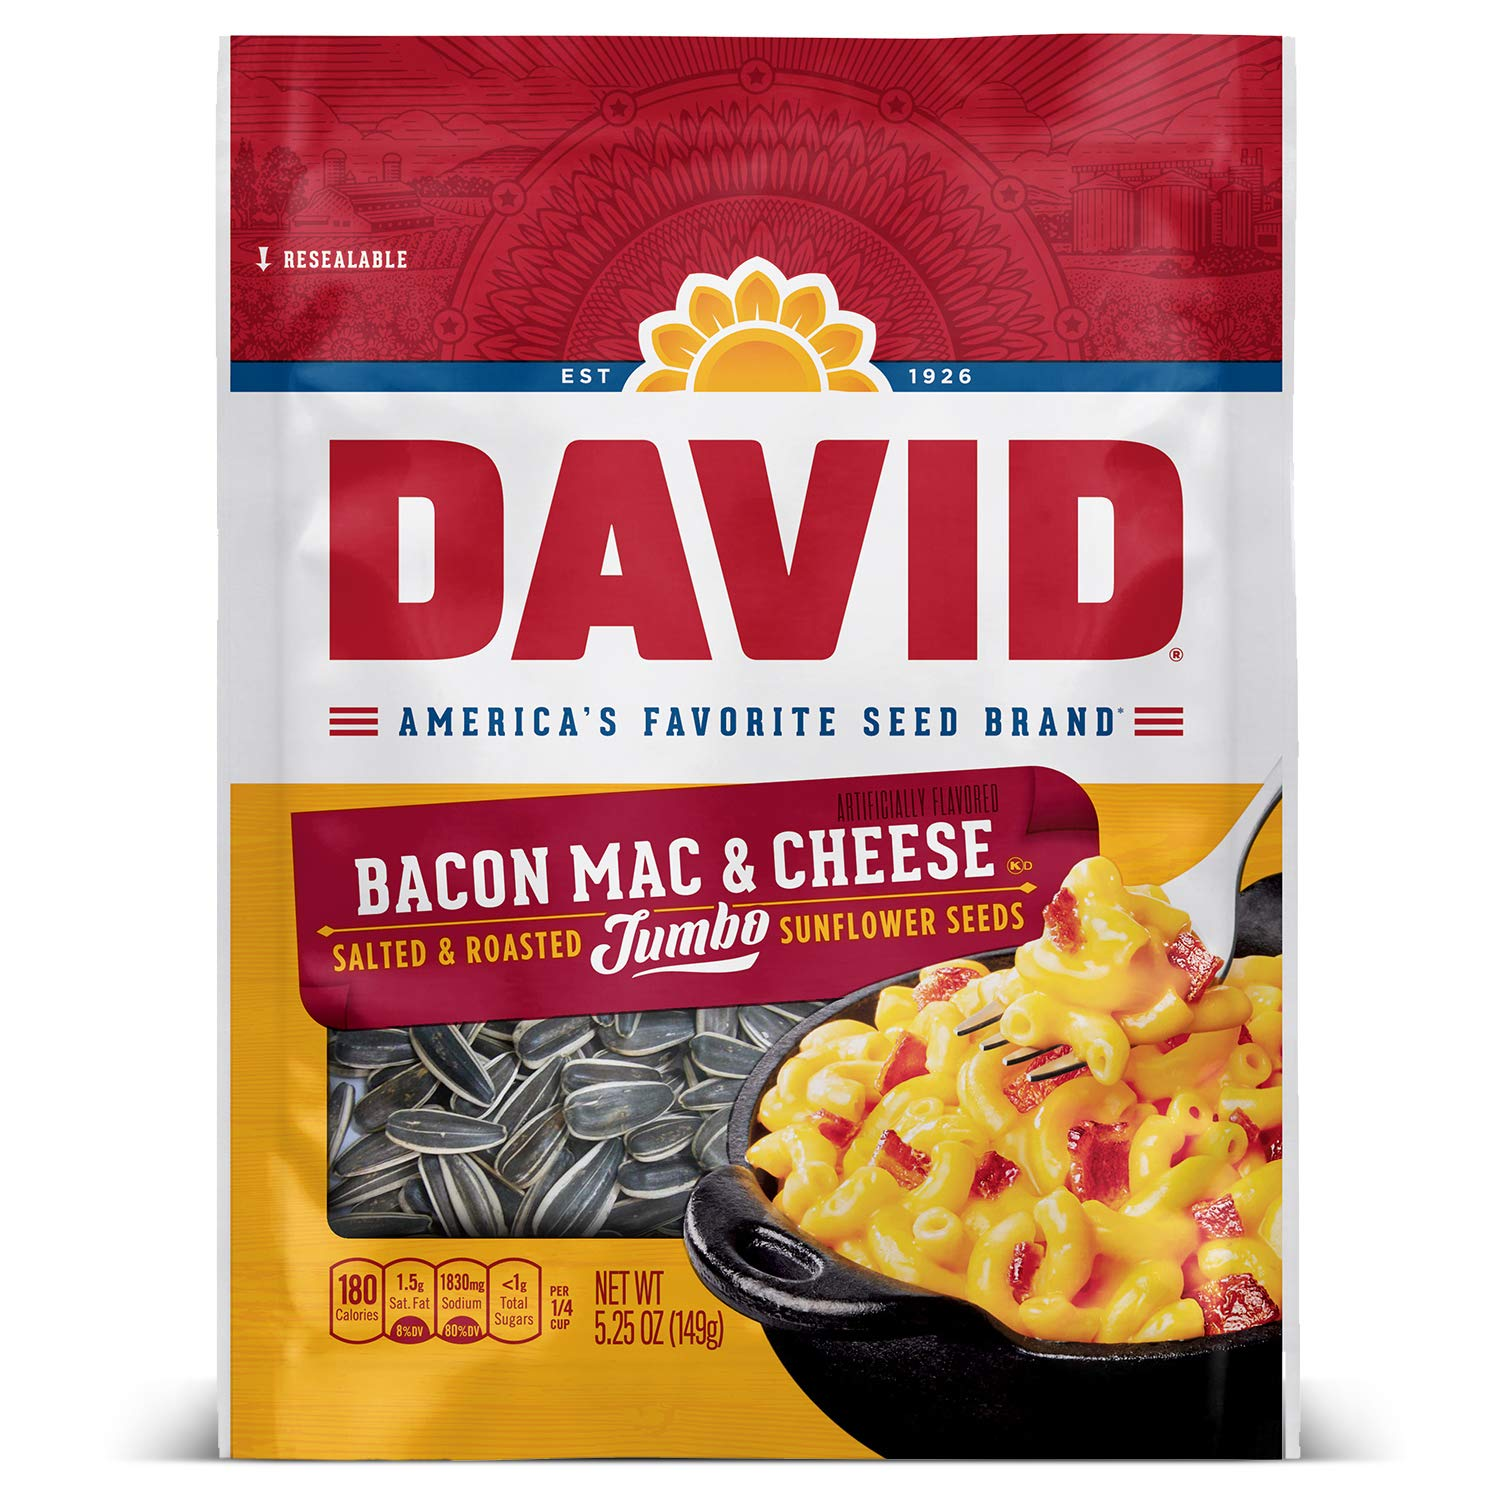 DAVID Seeds Roasted and Salted Bacon Mac & Cheese Jumbo Sunflower Seeds, Keto Friendly, 5.25 oz, 12 Pack